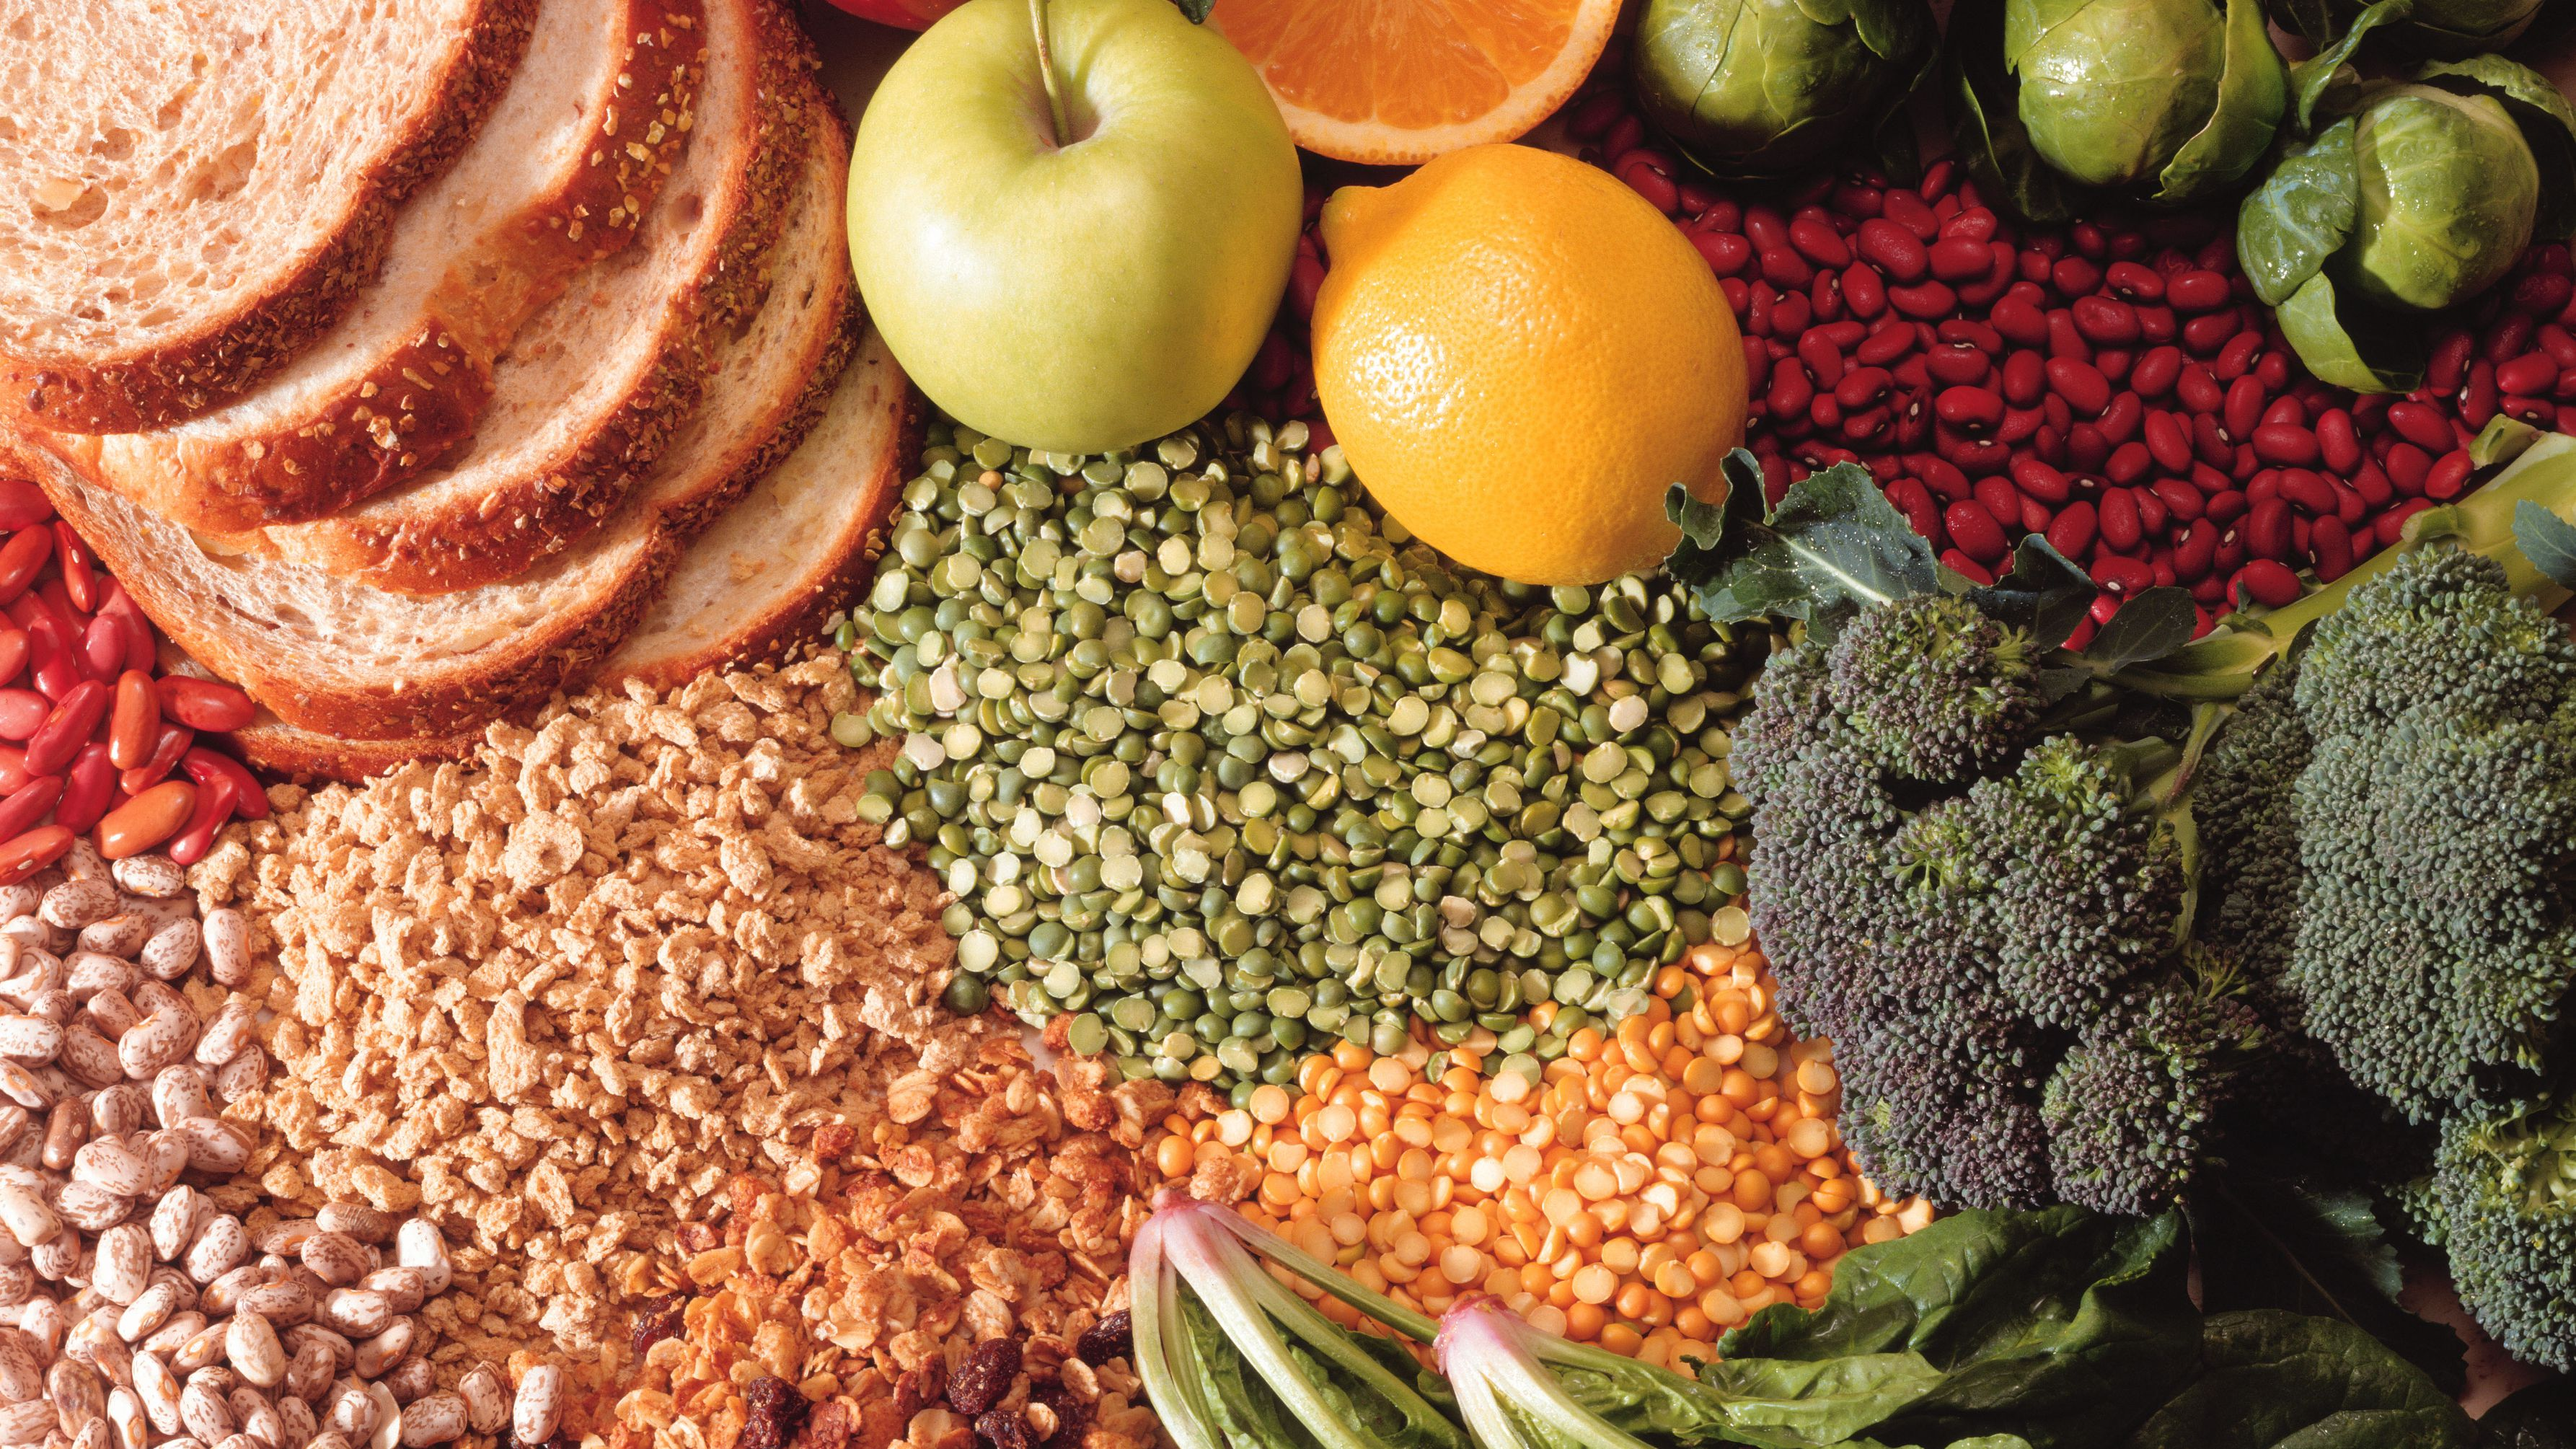 Pancreatitis Diet: What to Eat for Better Management